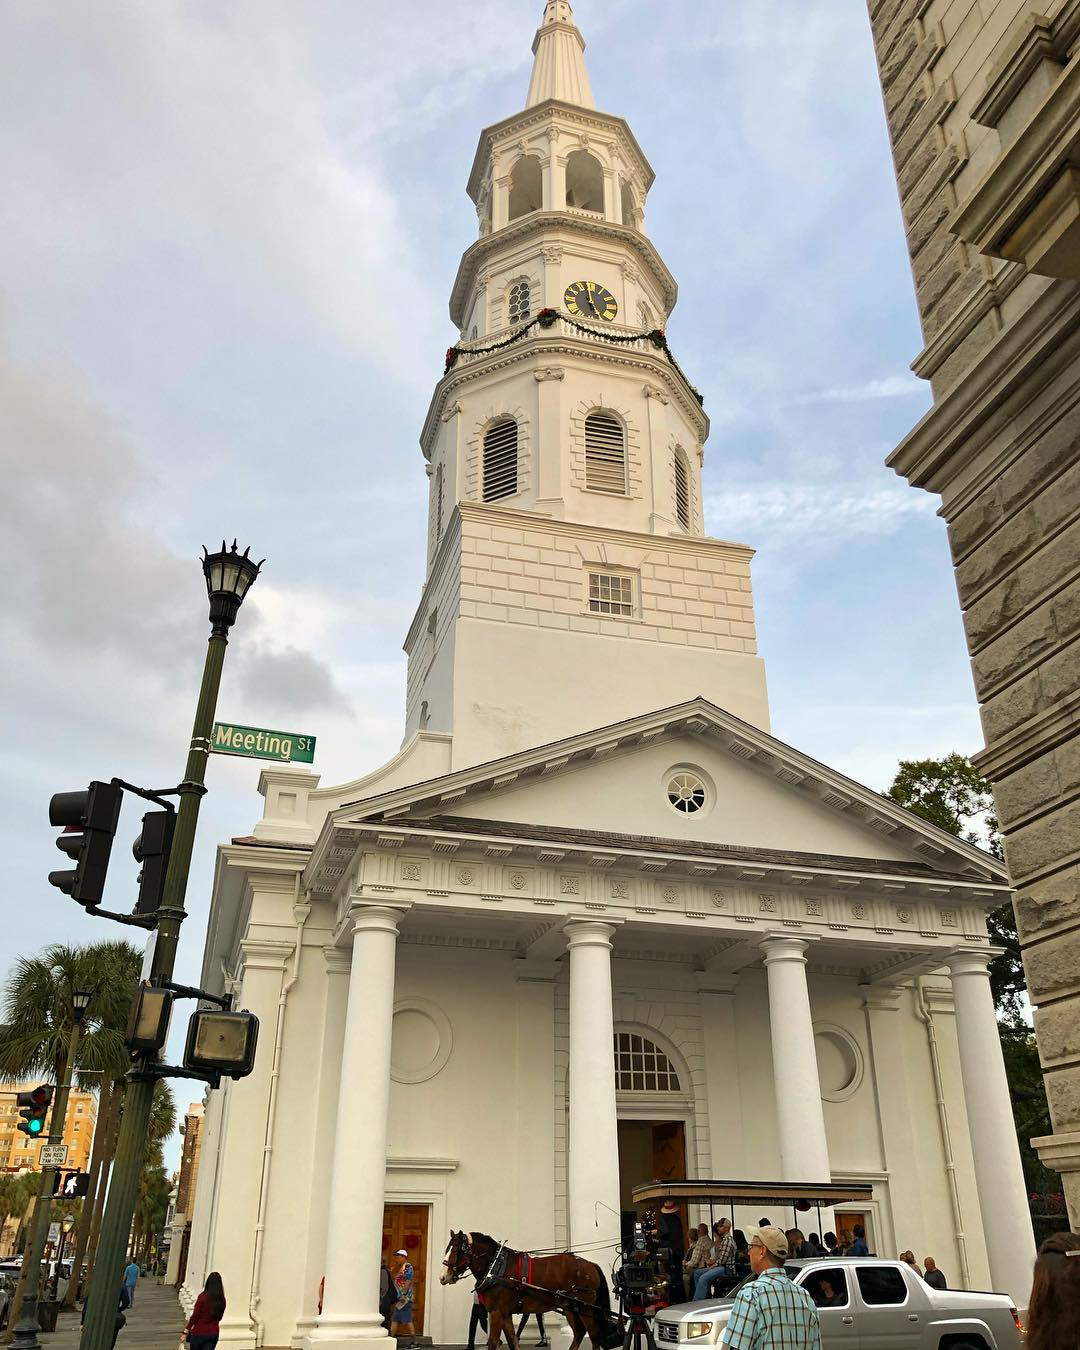 St. Michael's Church was built between 1751-1761 at the corner of Broad and Meeting streets on the site of the original wooden church built in 1681 by St. Philip's Church (It had been damaged in a hurricane in 1710 and a new St. Philip's Church was built several blocks away on Church Street